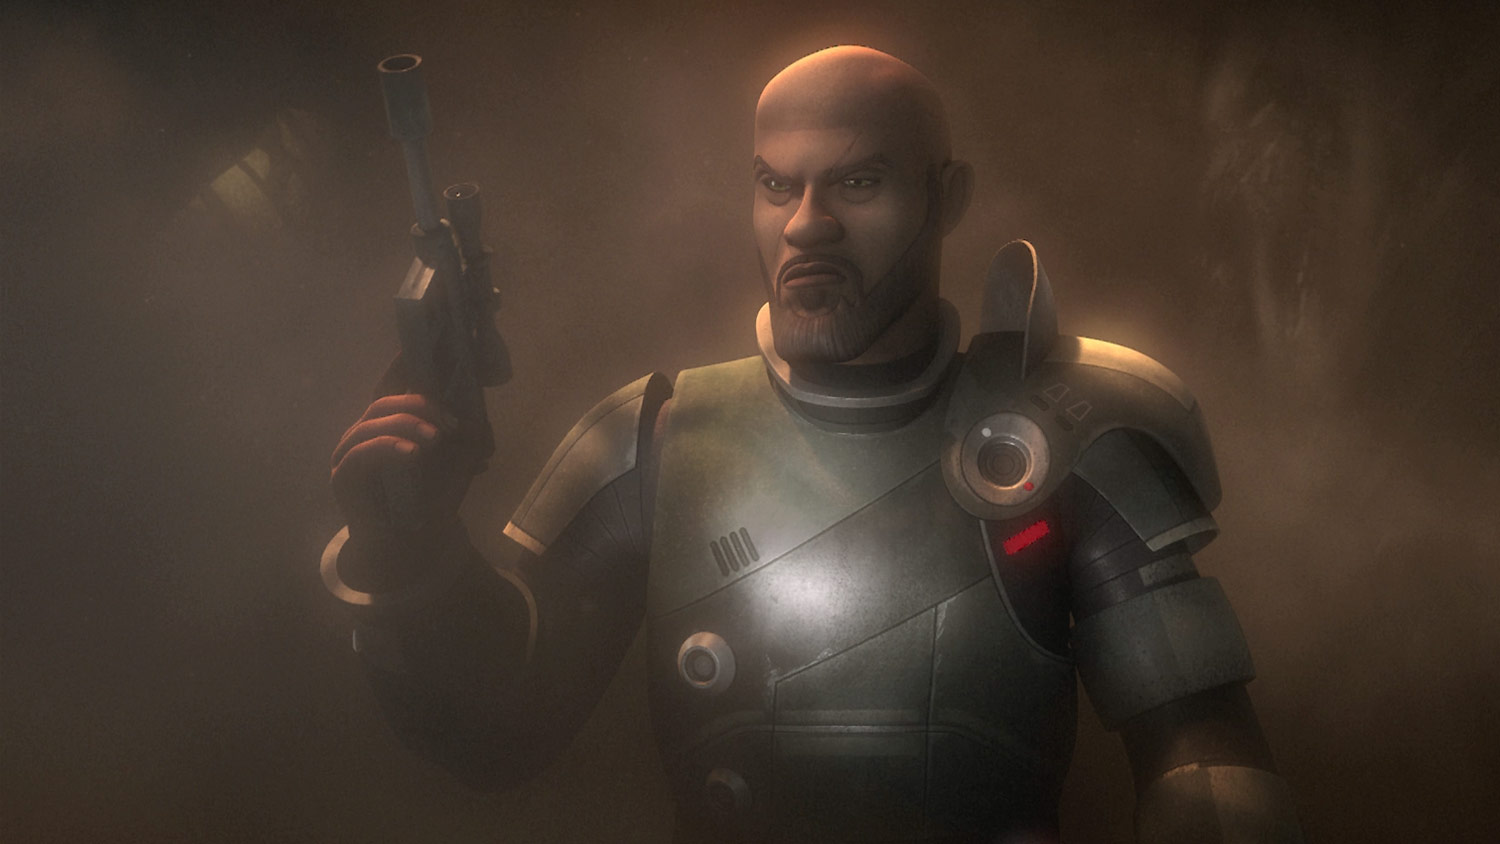 Saw Gerrera (as of Rebels)